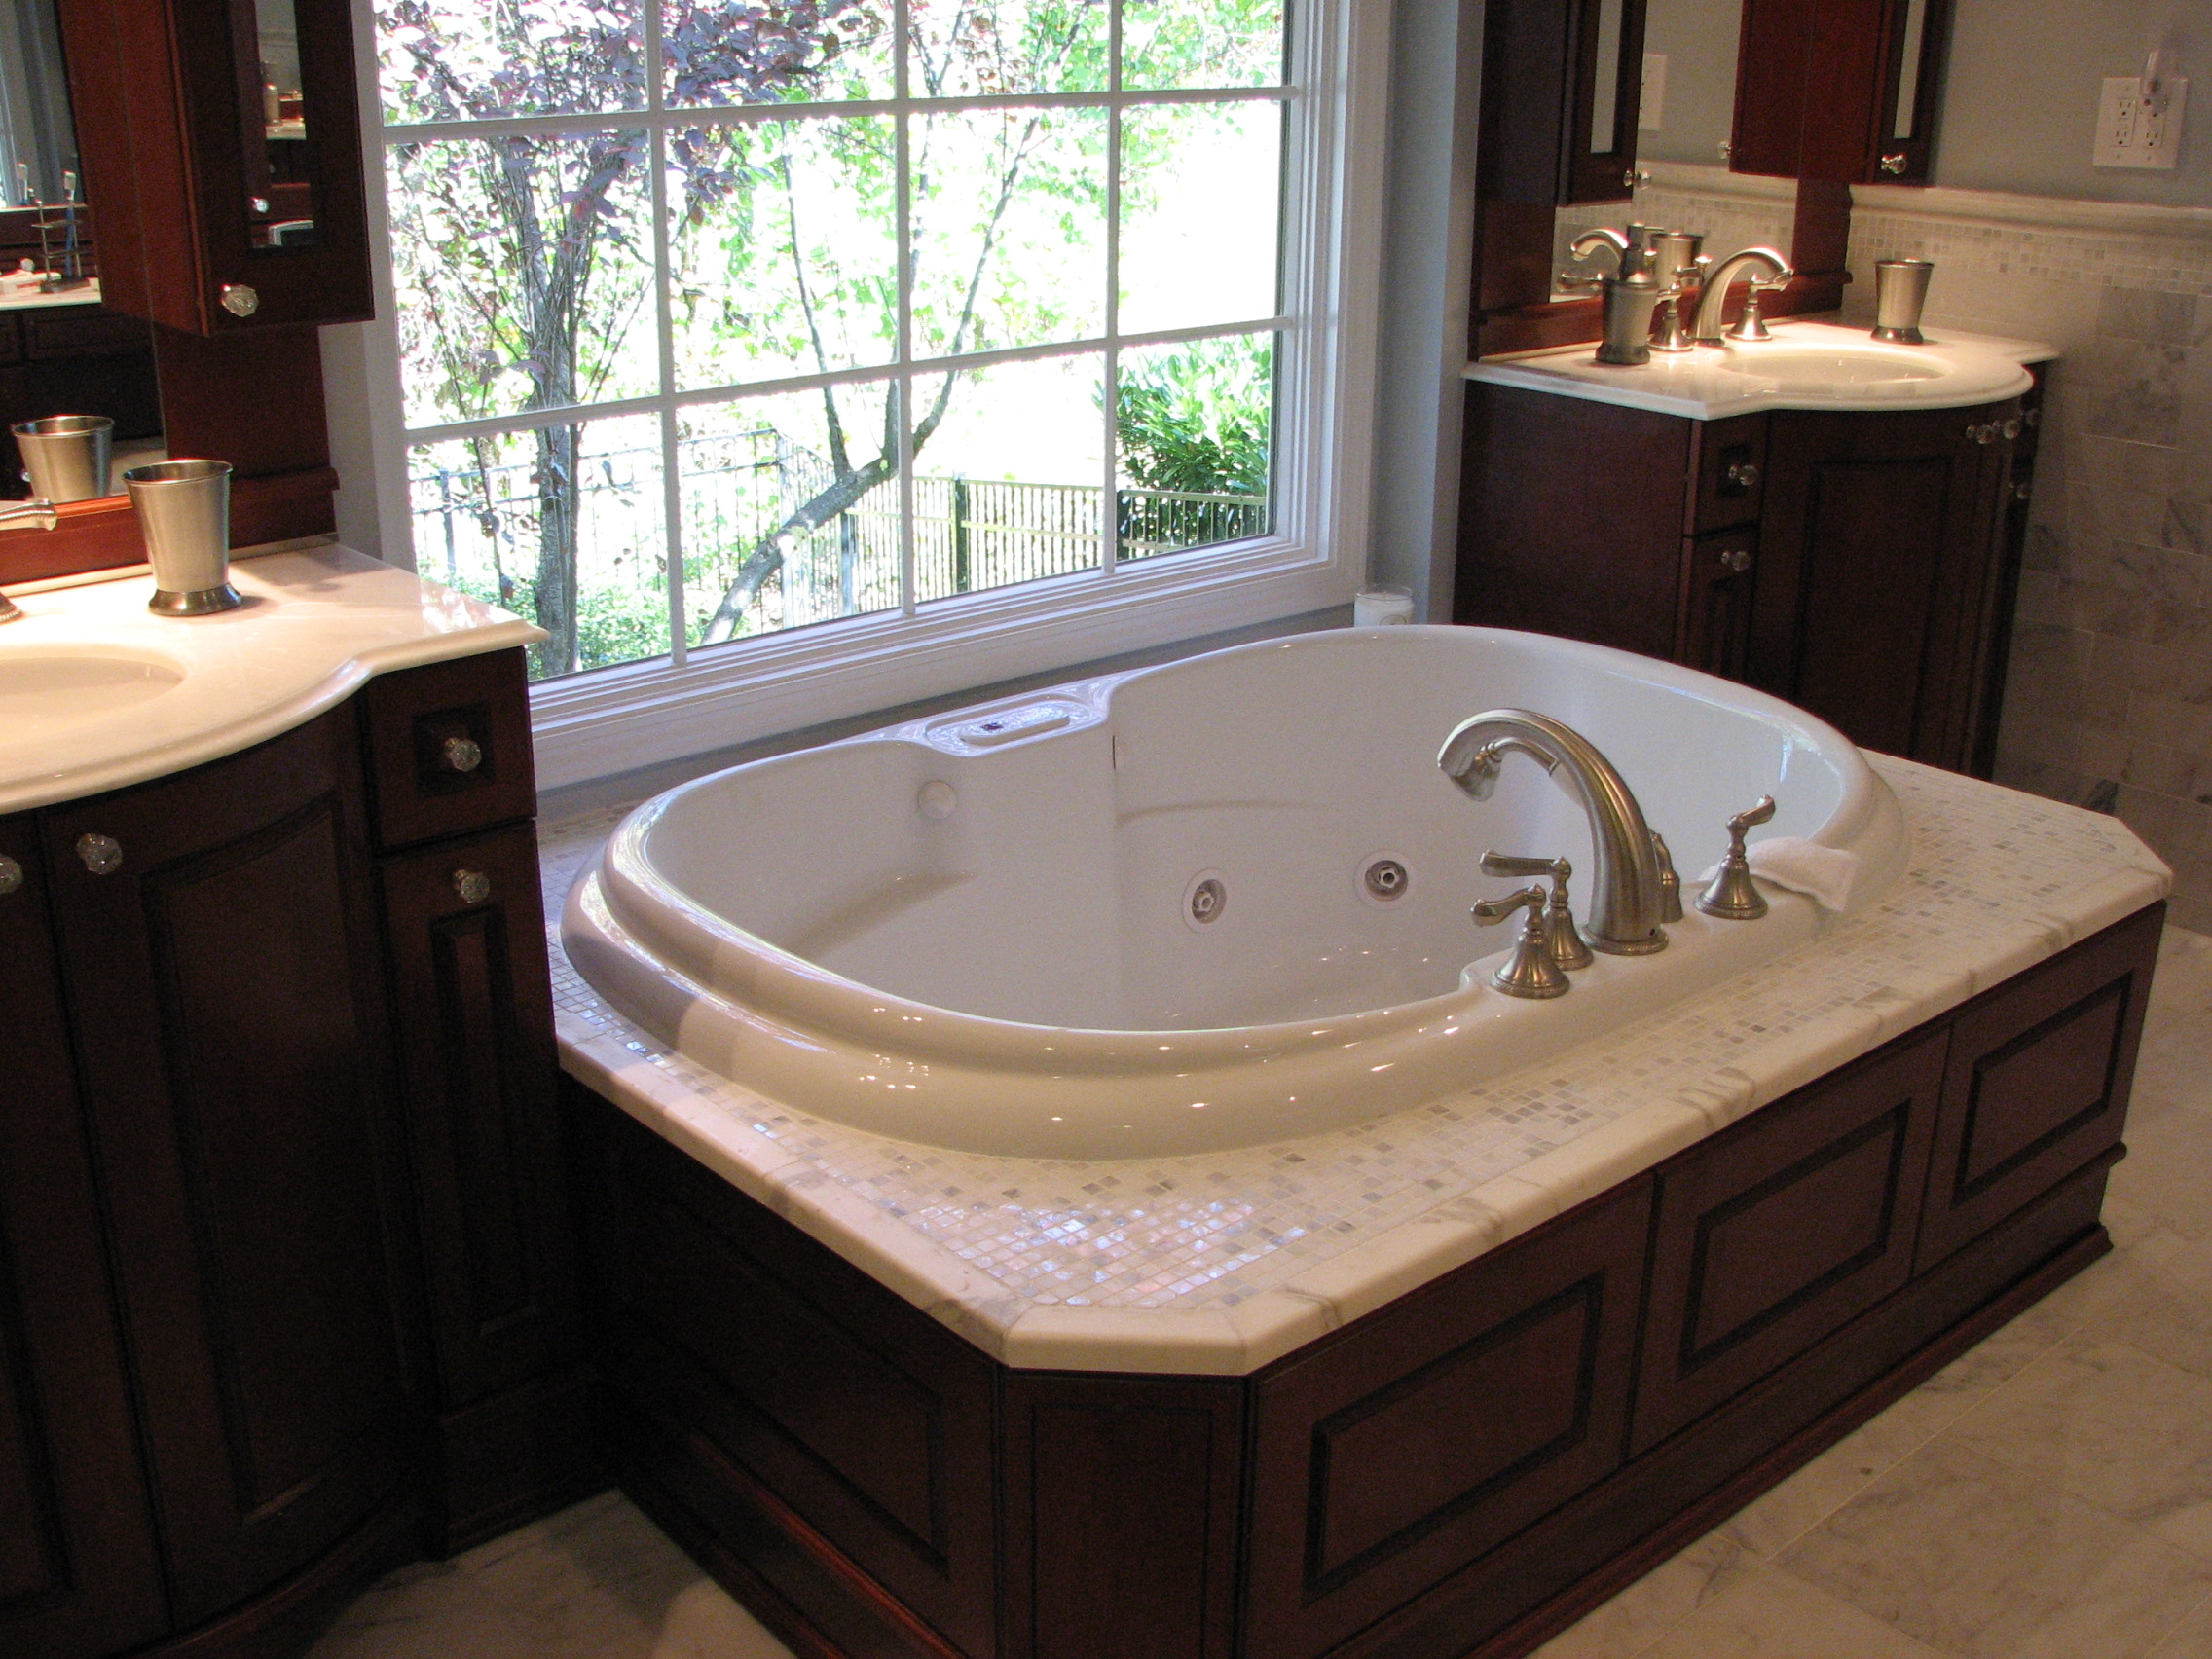 wholesale kitchen cabinets perth amboy Welcome To South Amboy Plumbing Supply Wholesale Plumbing